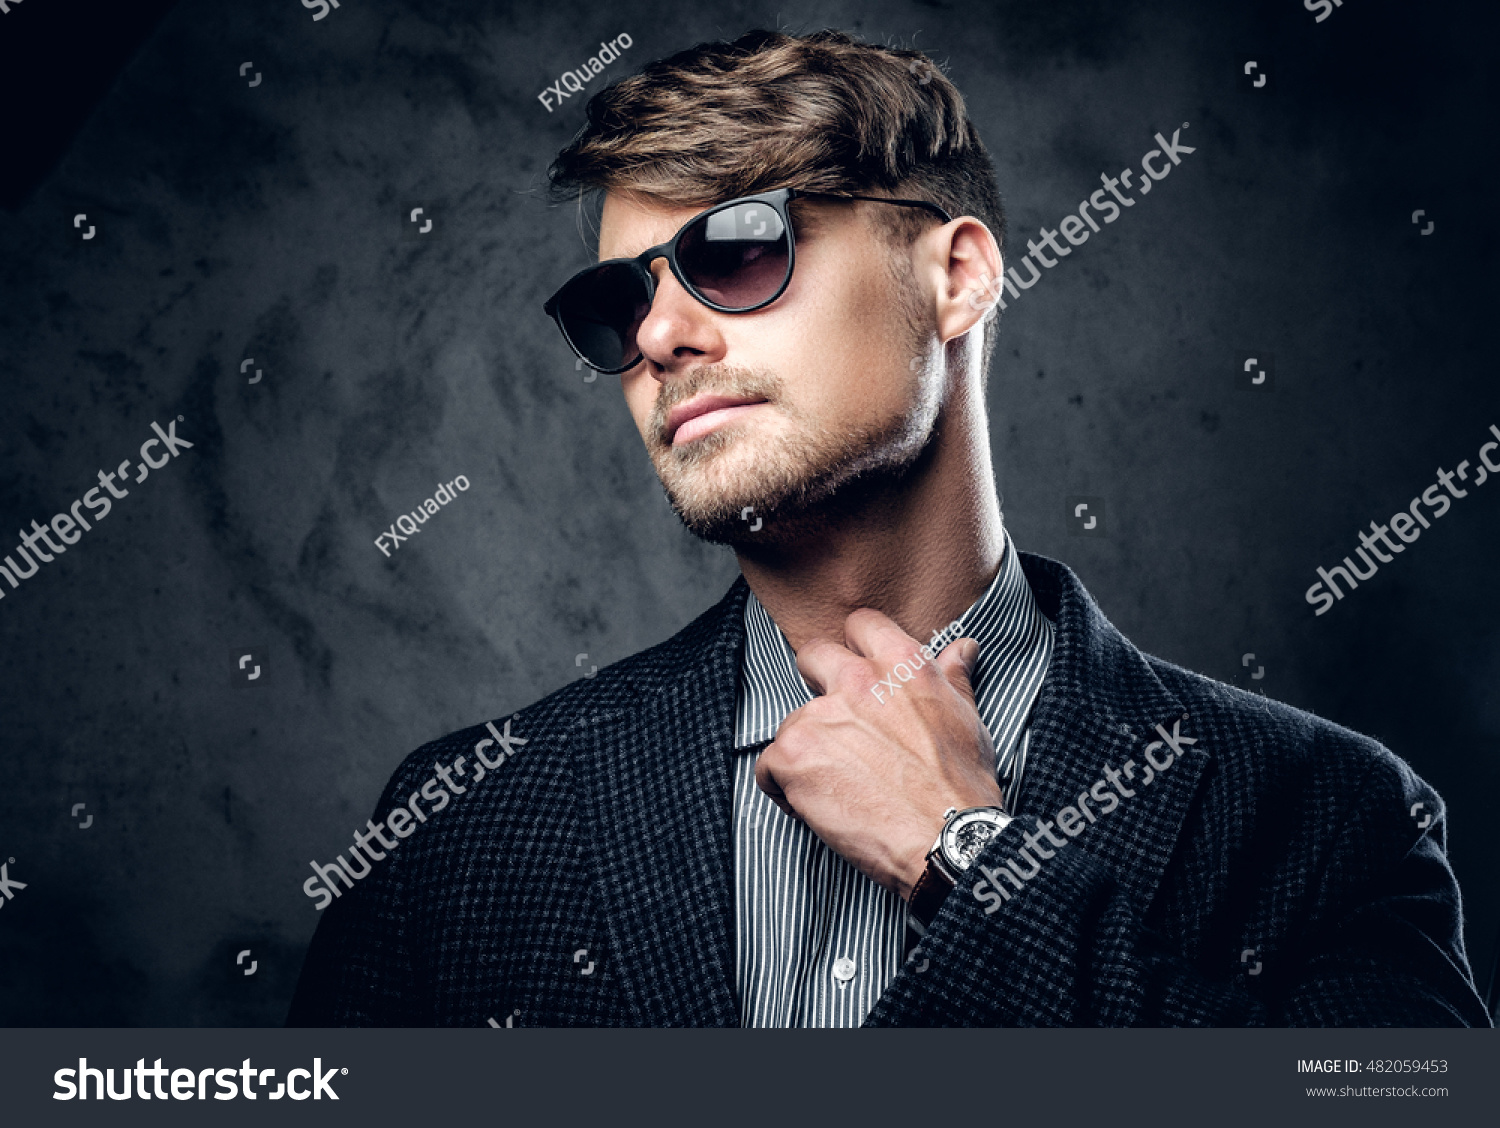 23a57db91adf Fashionable studio portrait of male in a suit and sunglasses on grey  background.